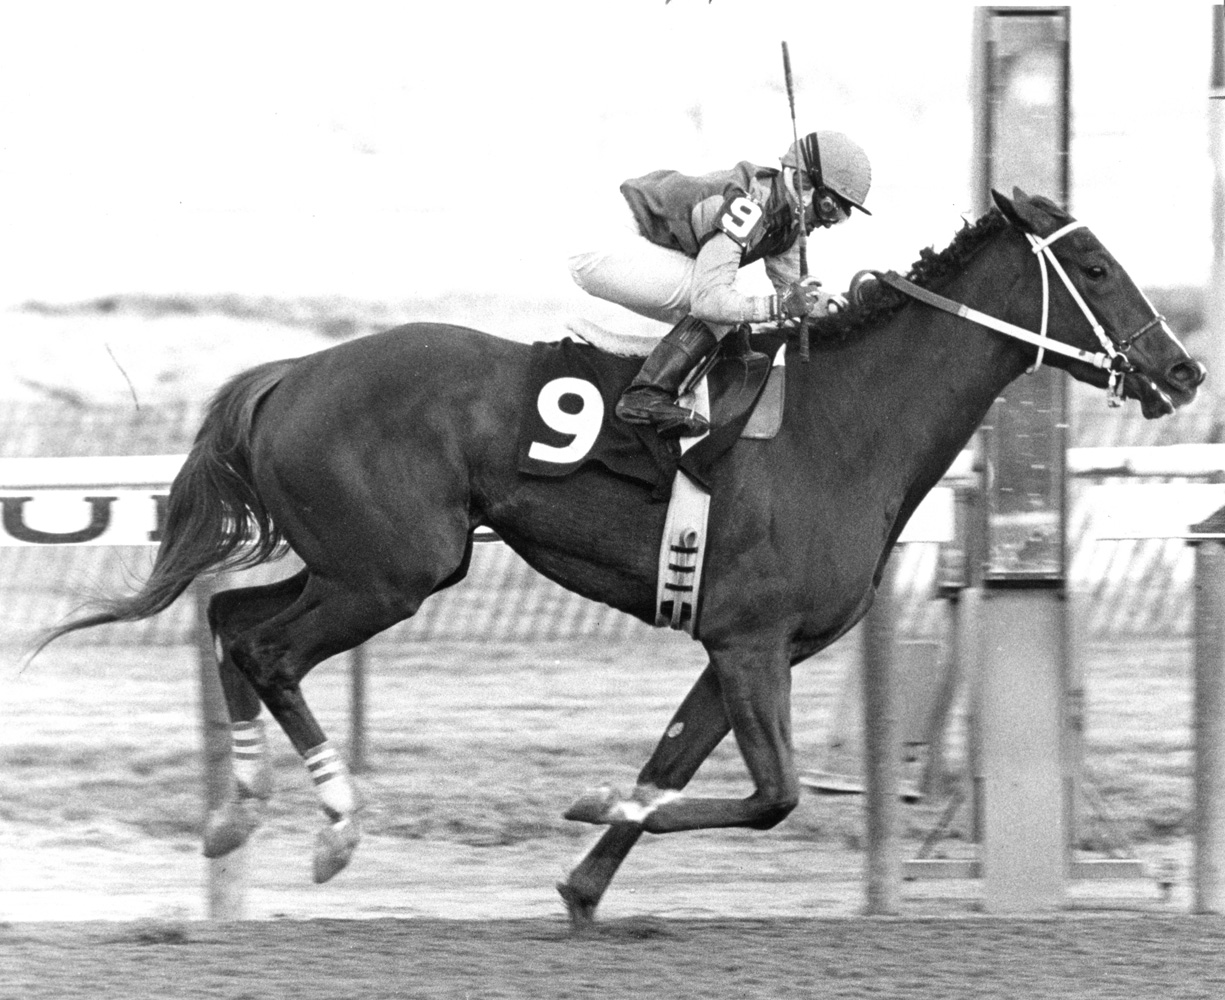 Julie Krone becomes the winningest female jockey in March 1988 aboard Squawter at Aqueduct (Courtesy of Ken Grayson)